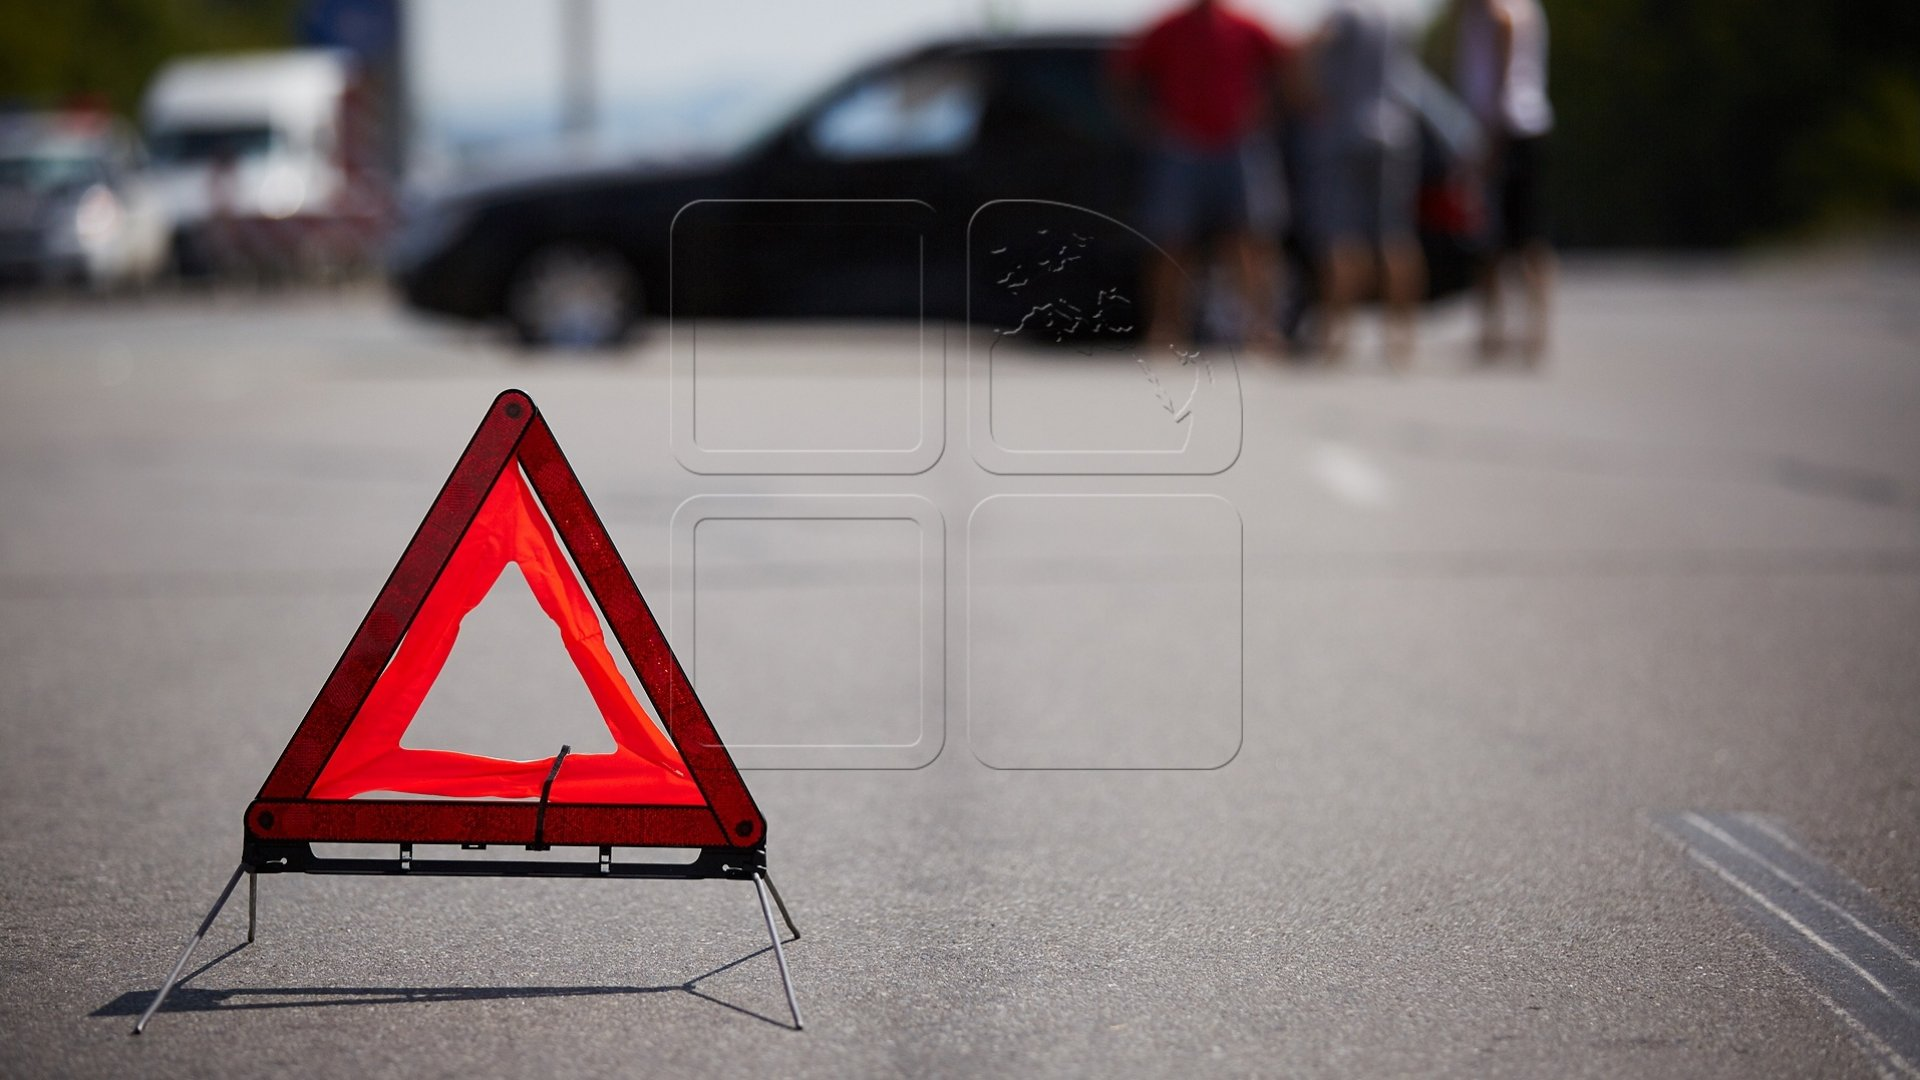 Man dies after car accident in Causeni district | PUBLIKA